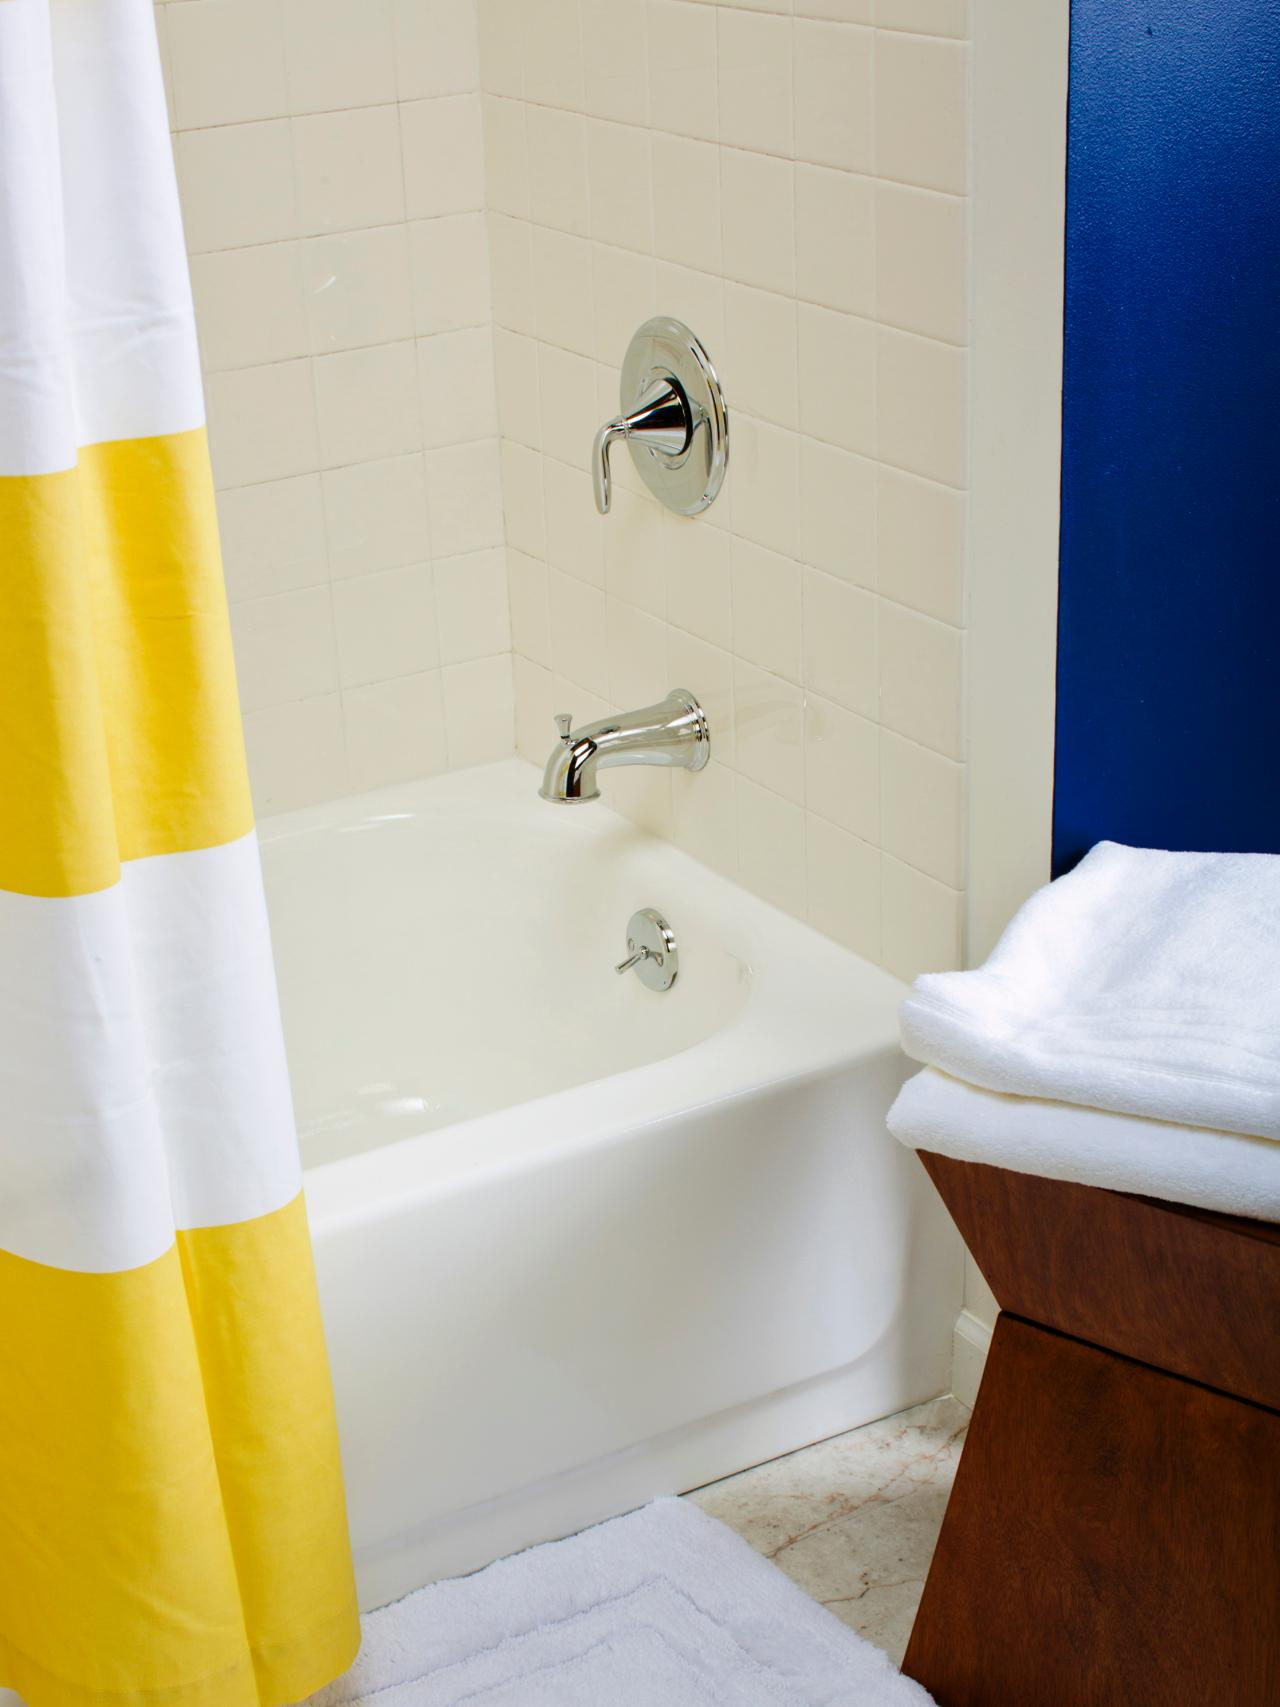 Bathroom Tiles And Paint Ideas tips from the pros on painting bathtubs and tile | diy